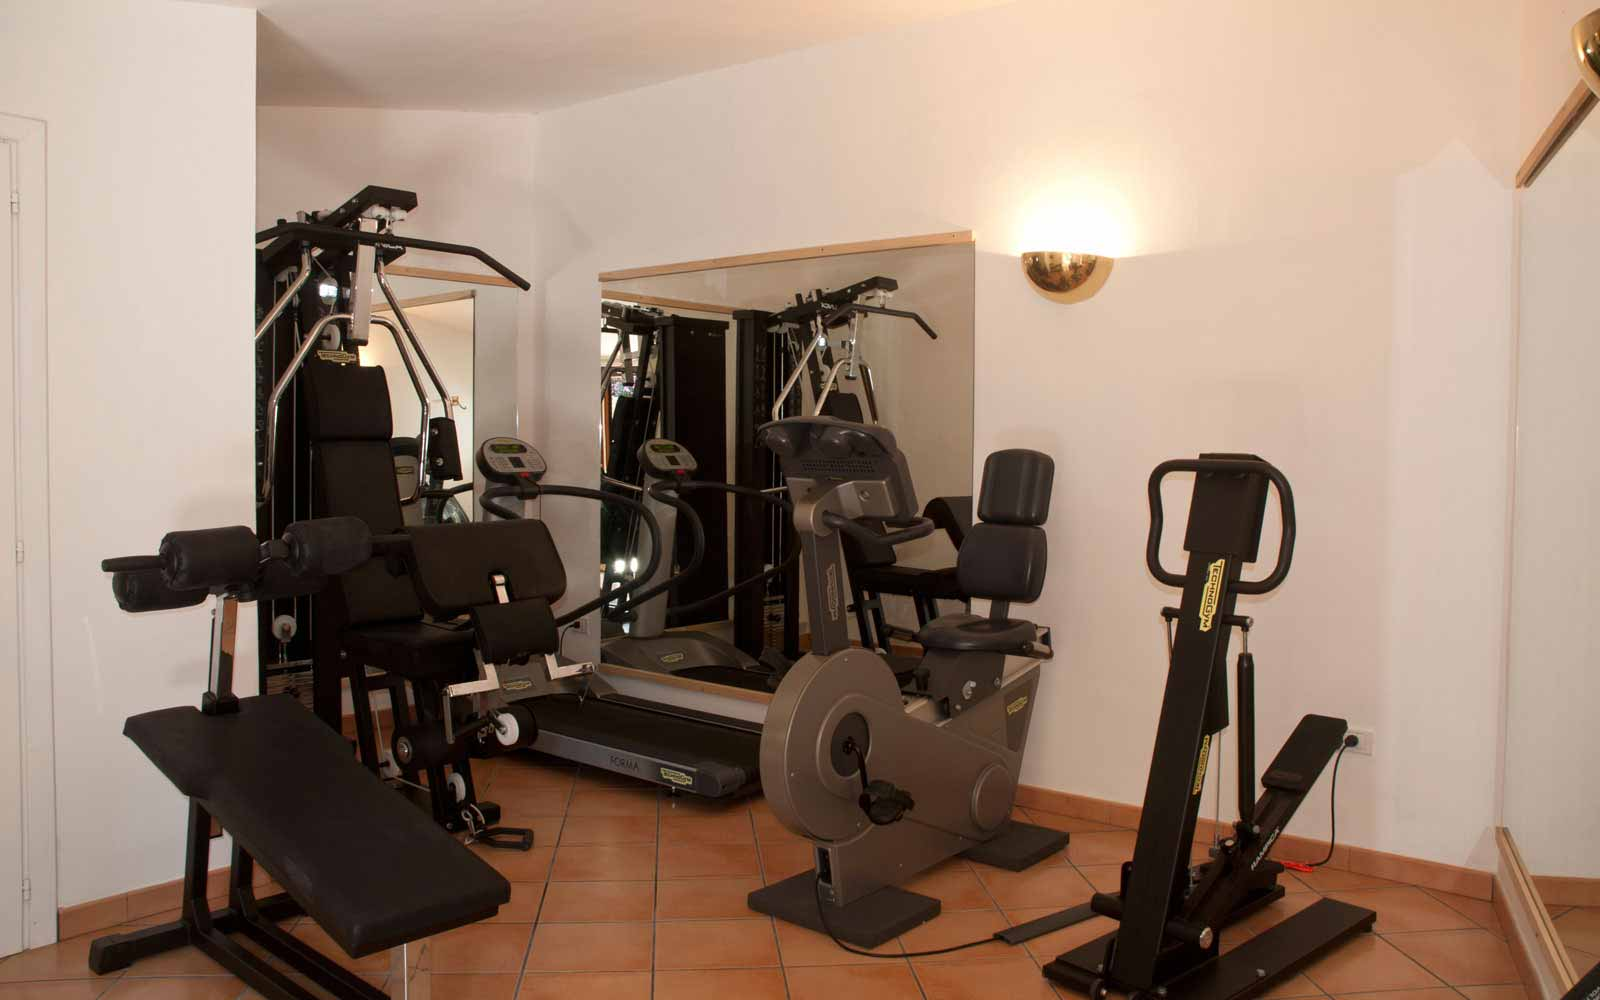 Gym facility at Villa Pedrabianca